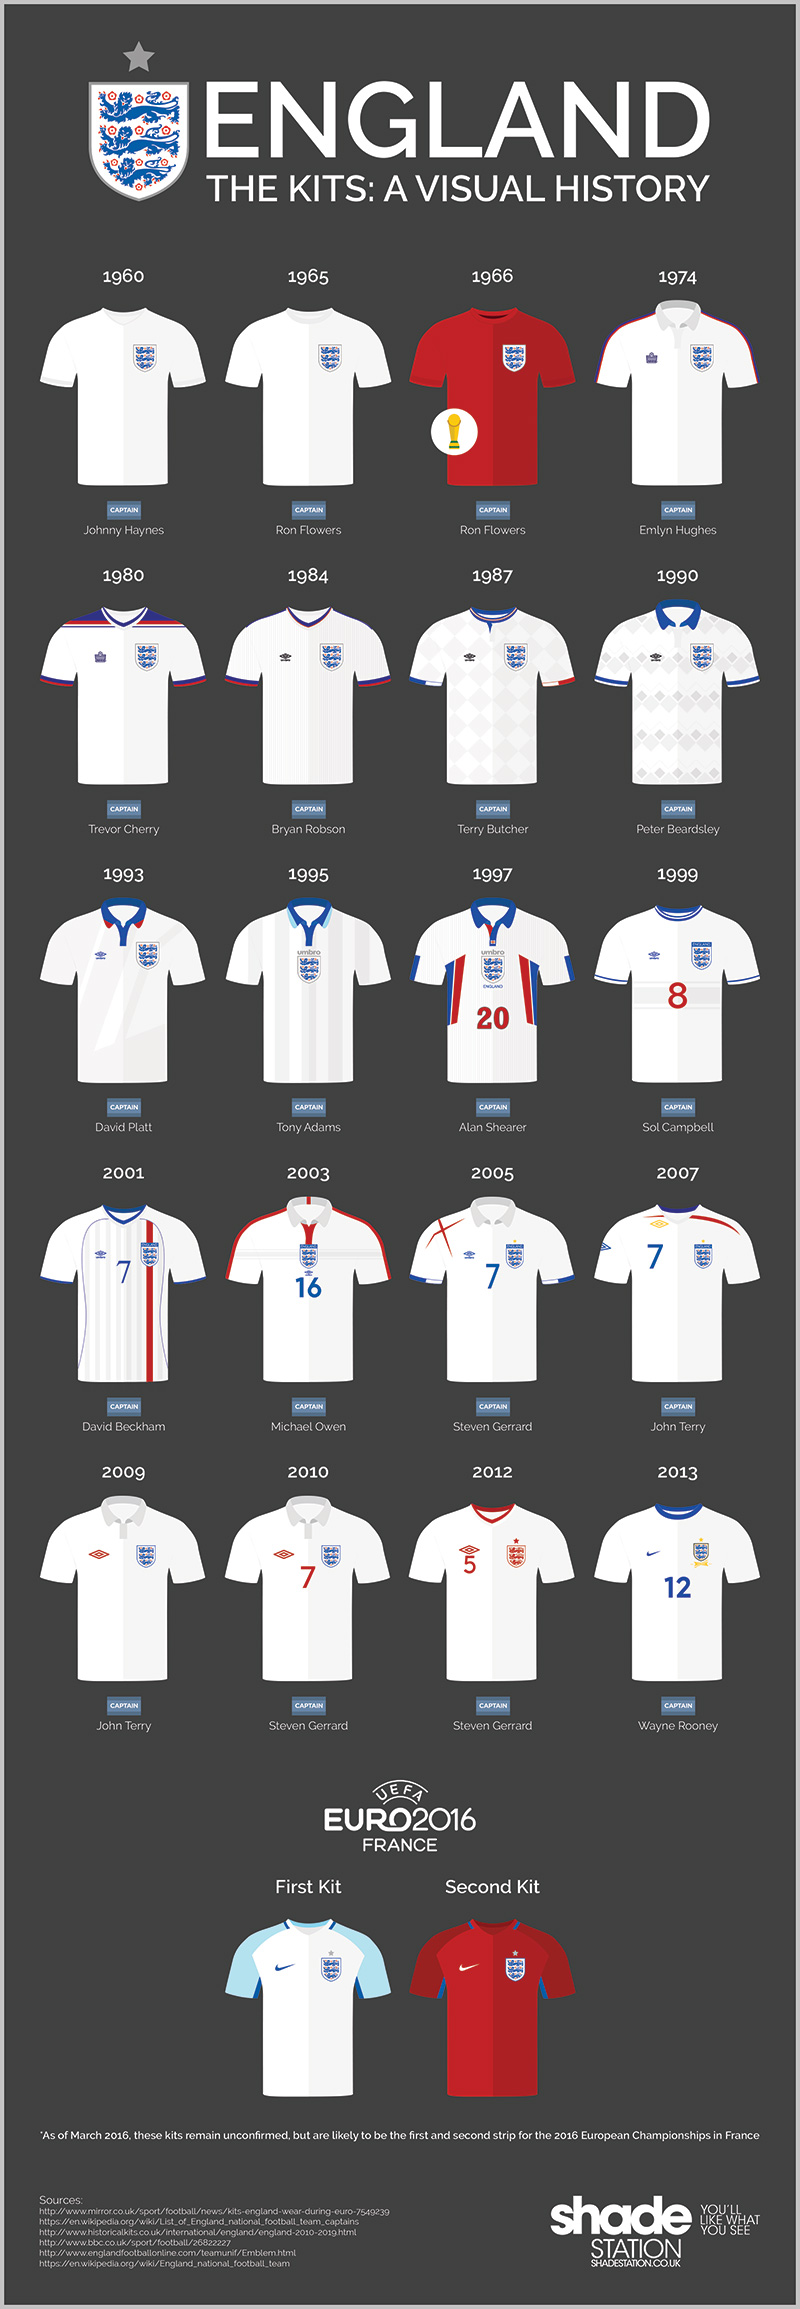 A Visual History of the England Kit